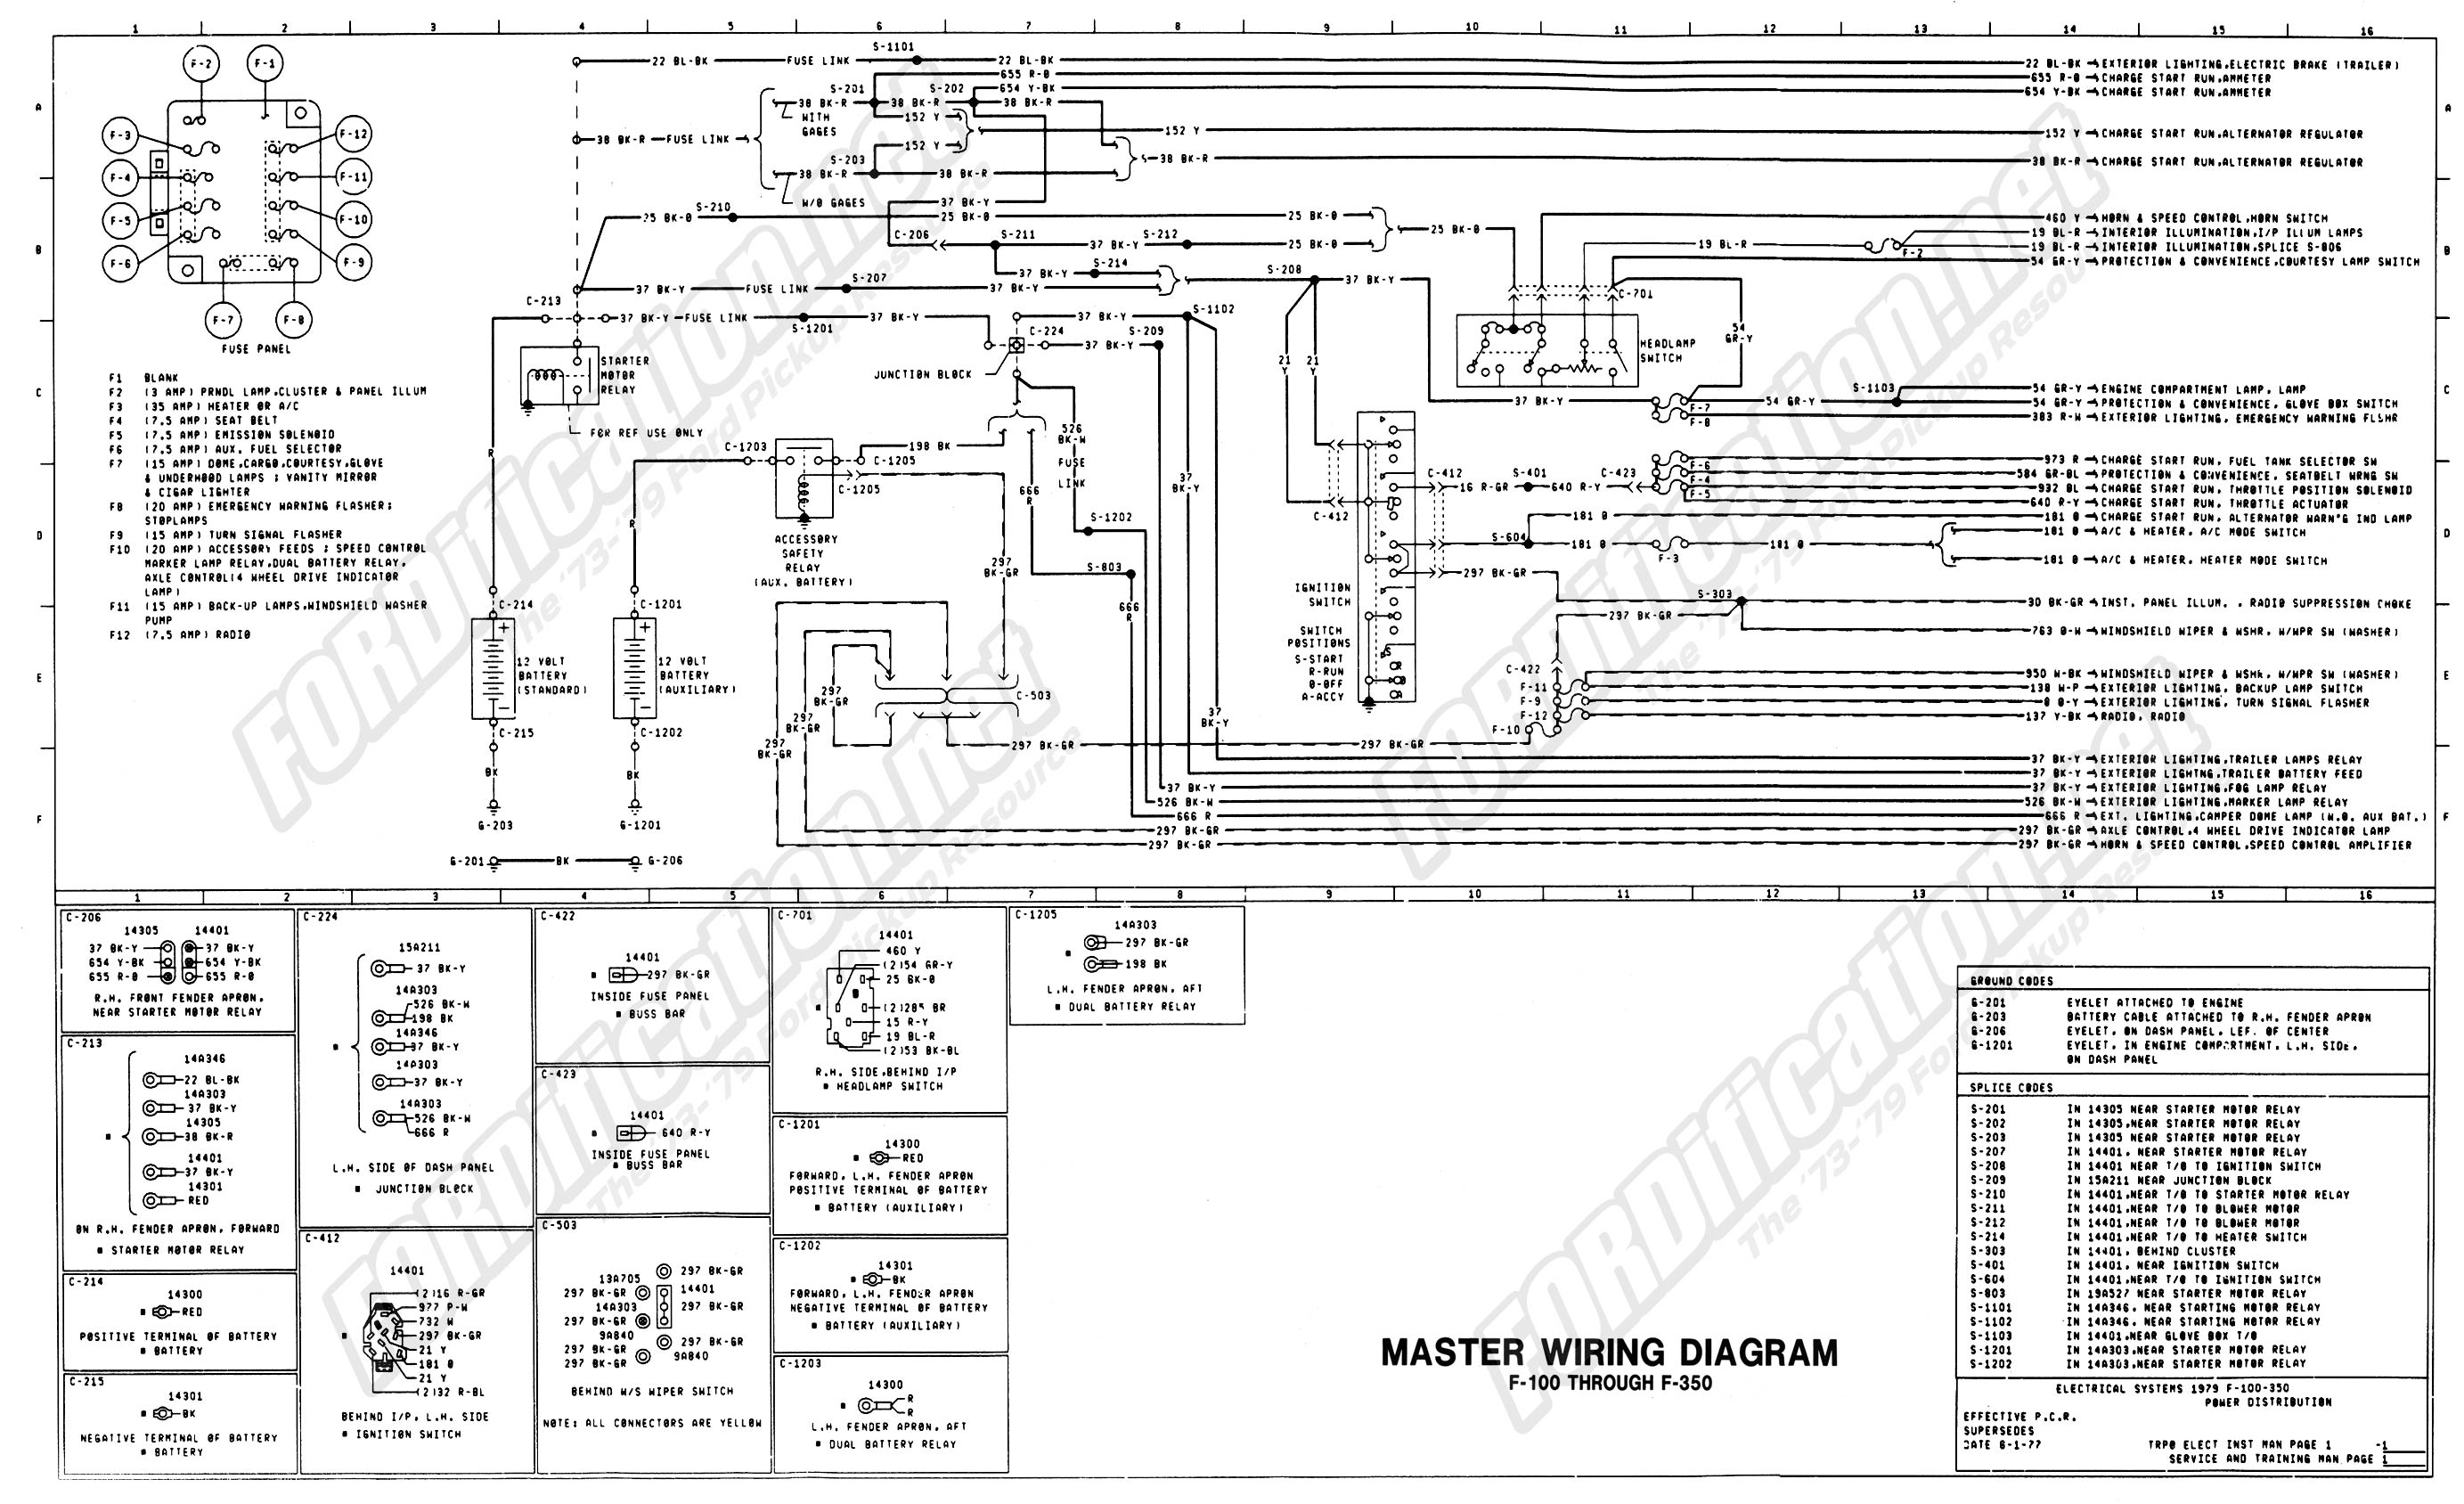 sterling fuse box wiring diagrams wiring diagram todays sterling truck wiring diagrams 2001 sterling fuse box [ 2766 x 1688 Pixel ]